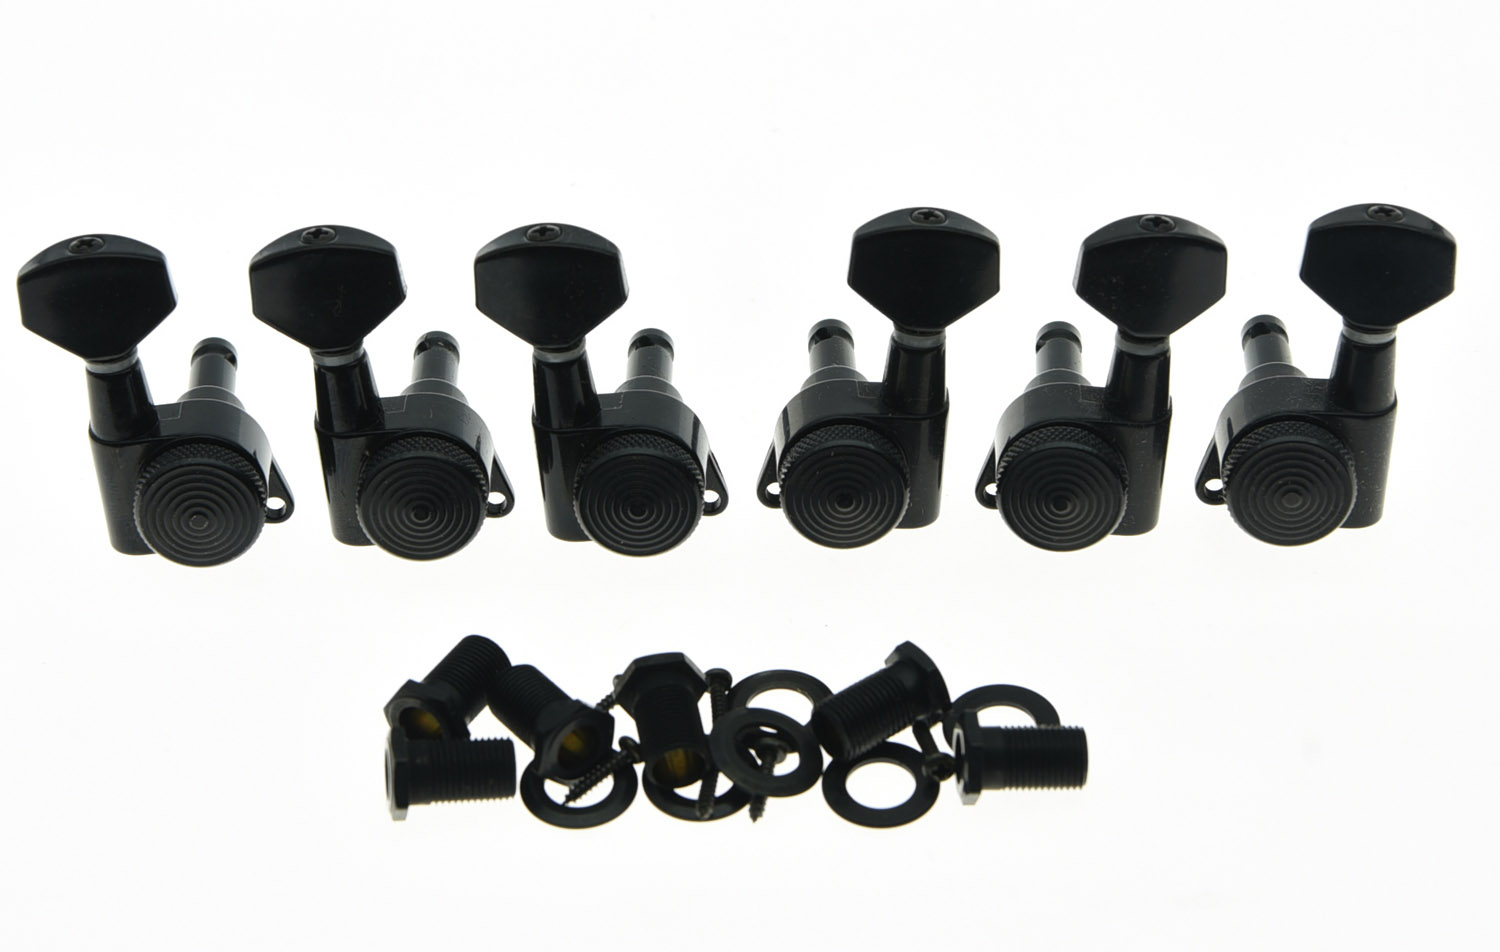 KAISH 3L3R Locking Tuning Keys Guitar Tuners Pegs Machine Heads Black